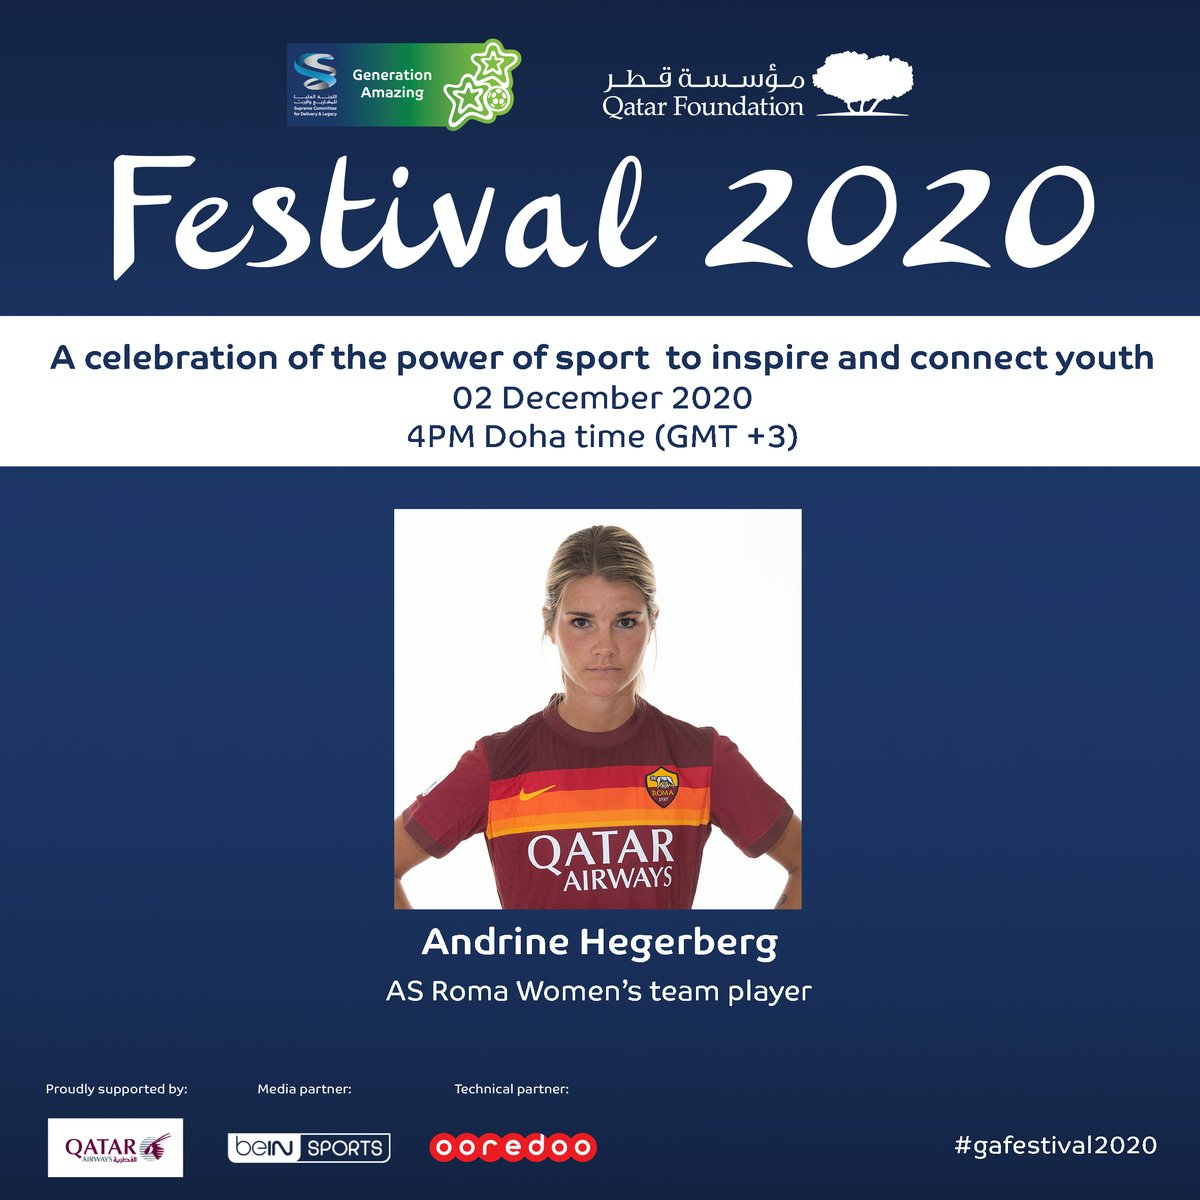 Generation Amazing's #GAFestival2020 gets underway today!   Our very own @AndrineStolsmo is a guest for the first @GA4good webinar - register now to watch the event at 14:00 CET!   ➡️